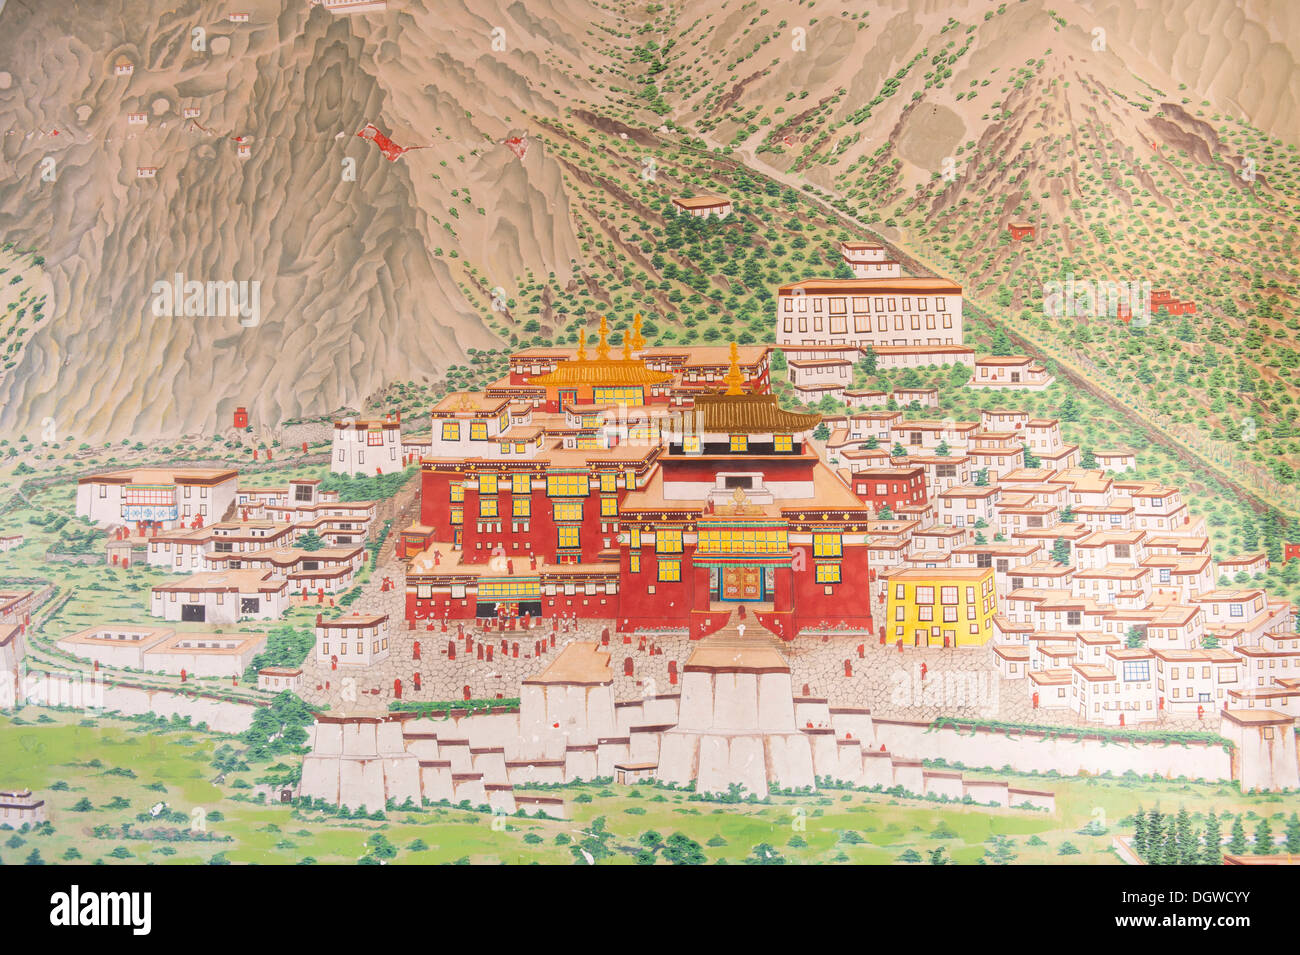 Tibetan Buddhism, main monastery of the Karma Kagyu lineage, Tsurphu in Tibet, mural at the entrance to the Rumtek Monastery - Stock Image